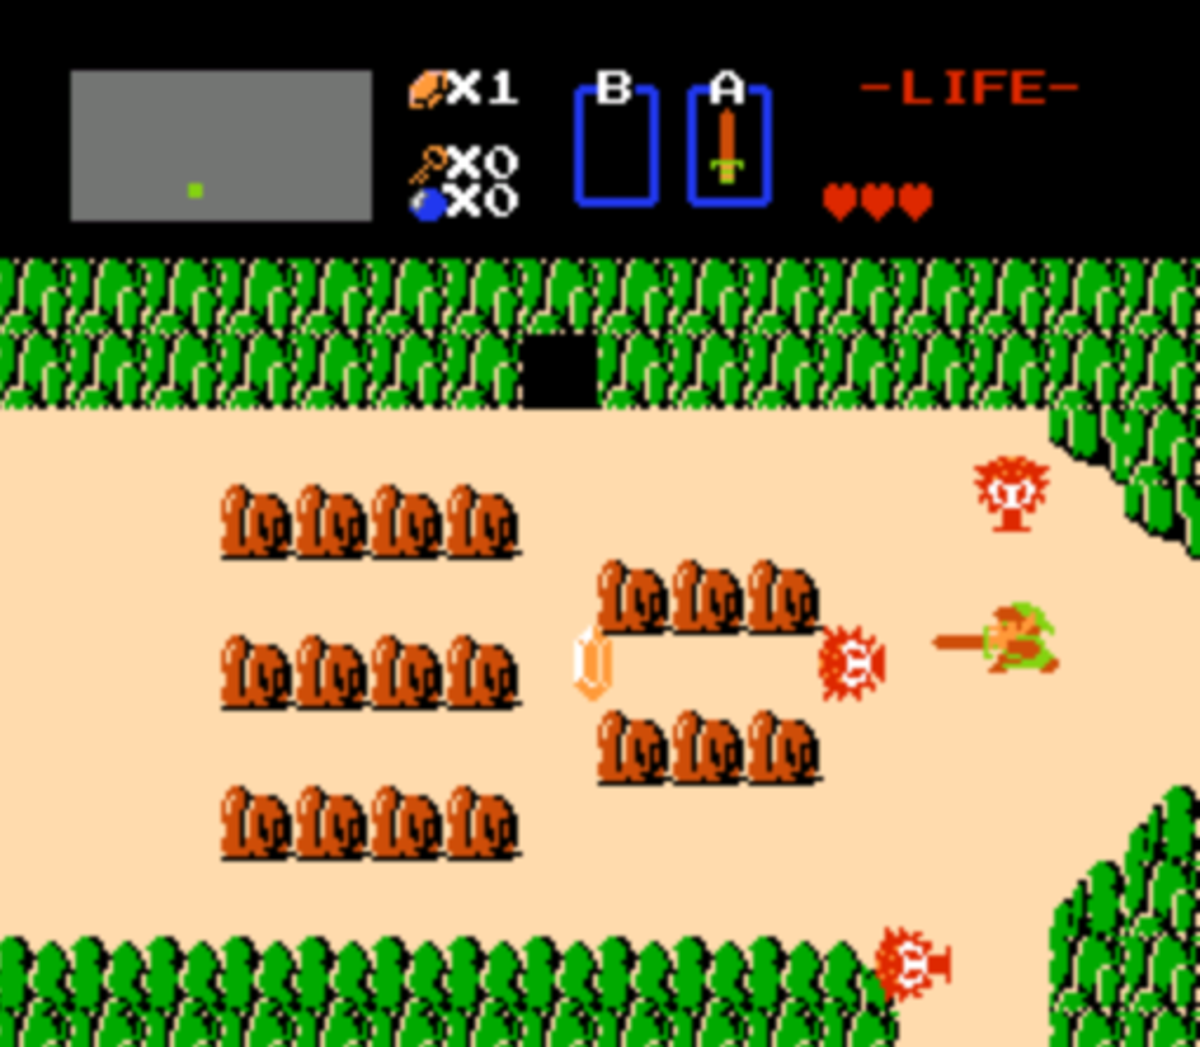 The Legend of Zelda: A Series Sypnosis